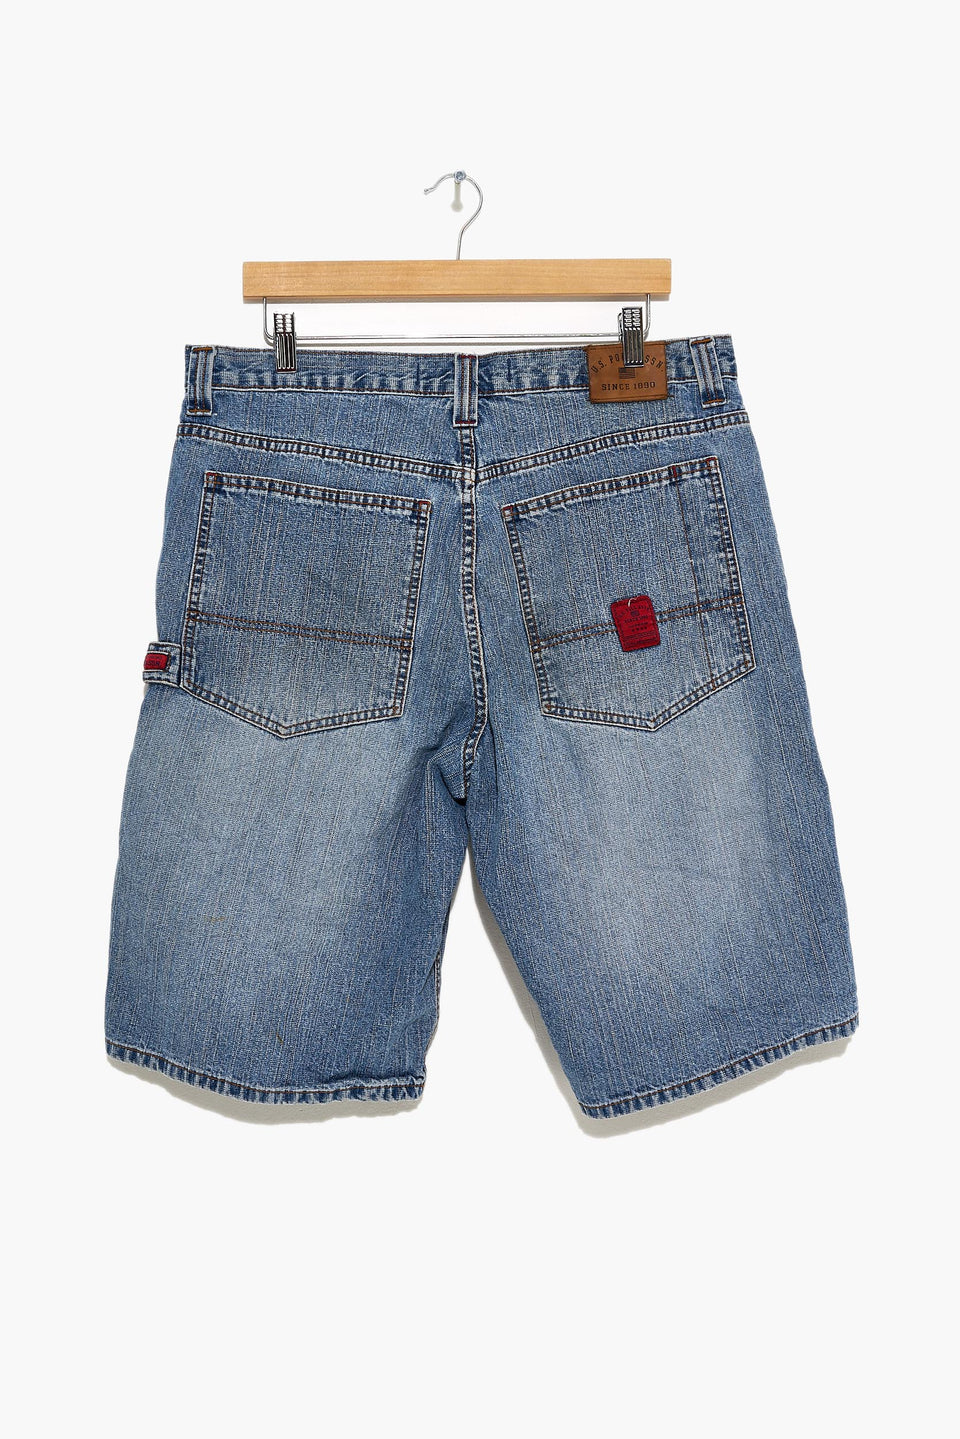 U.S POLO ASSN Shorts